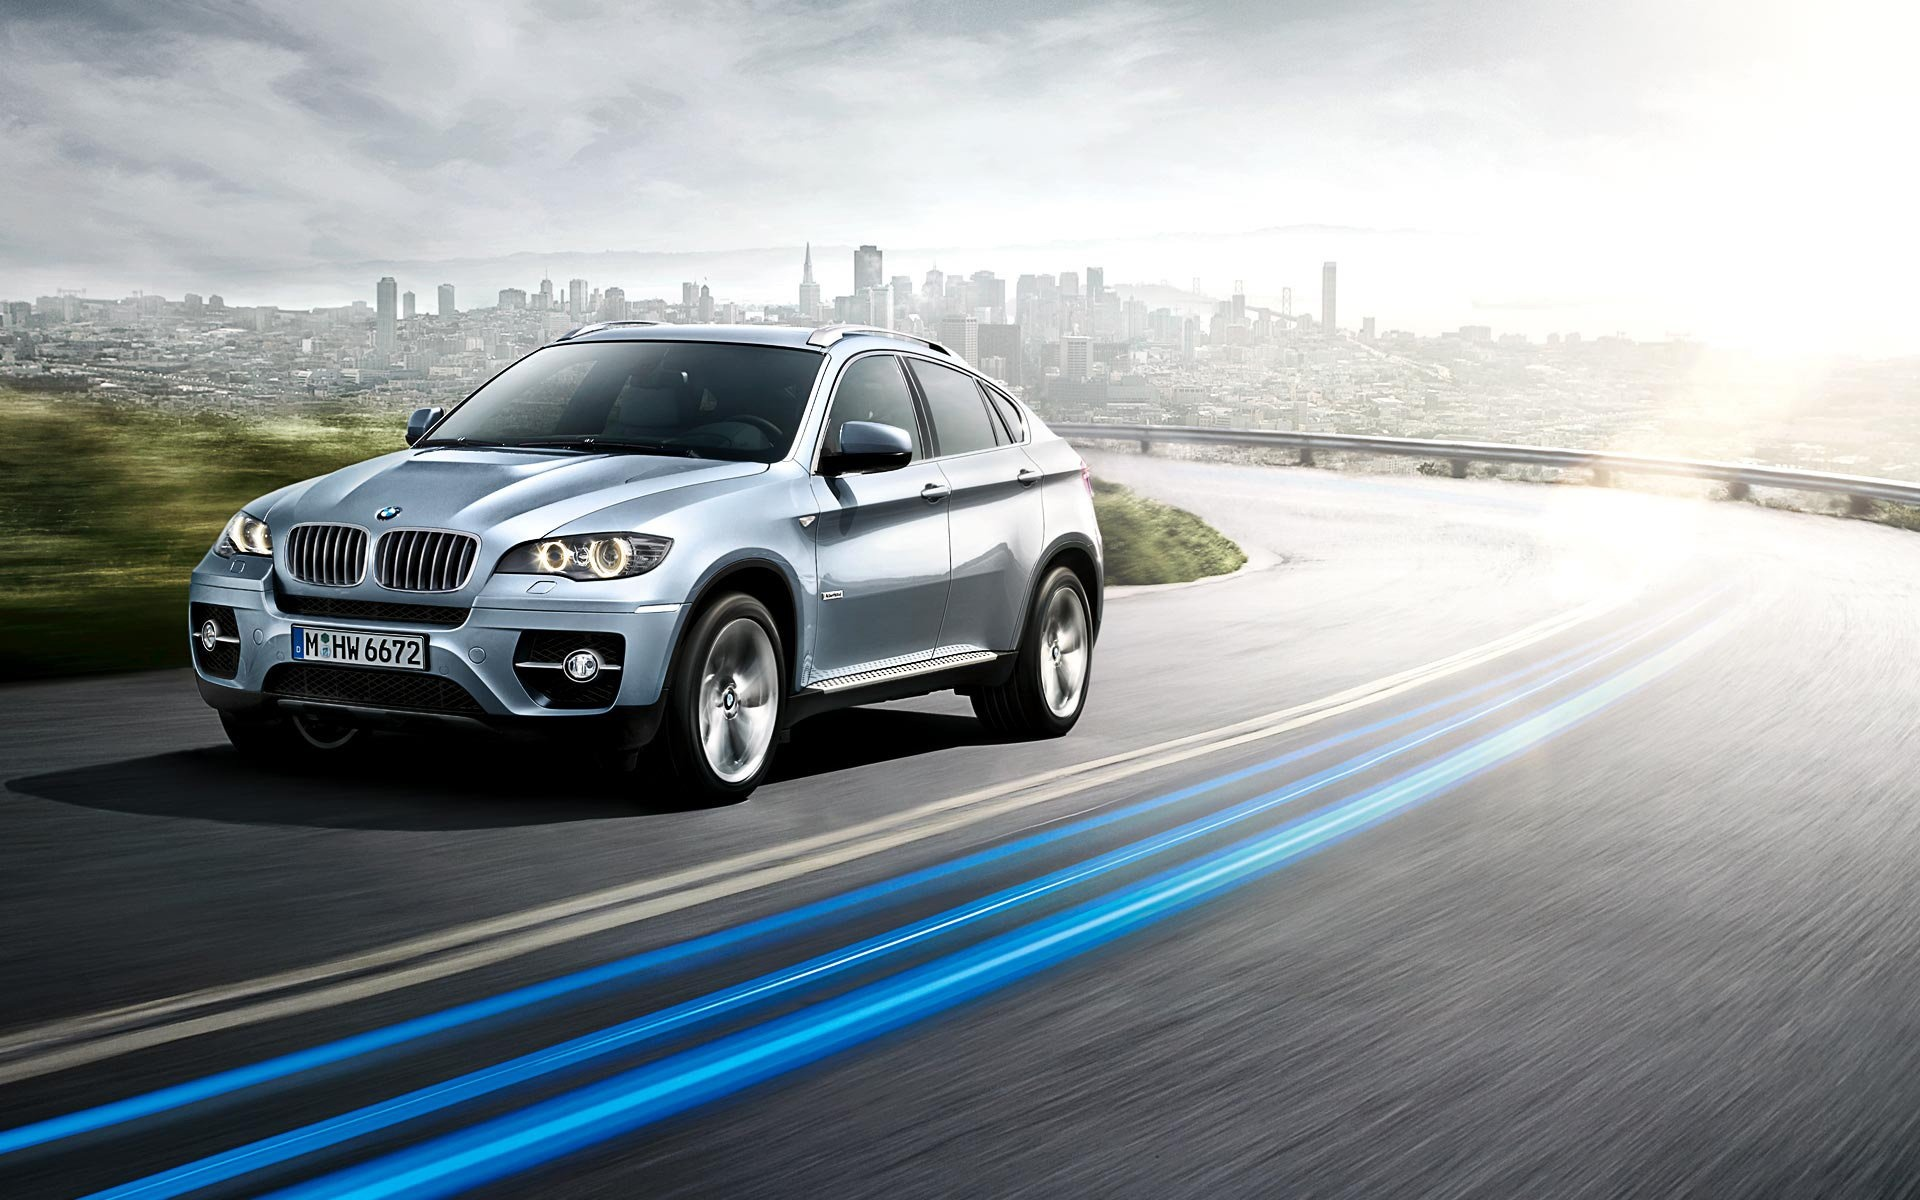 Bmw X6 Car Modified Wallpaper Fresh Best Bmw Wallpapers for Desktop Tablets In Hd for Download Of New Bmw X6 Car Modified Wallpaper